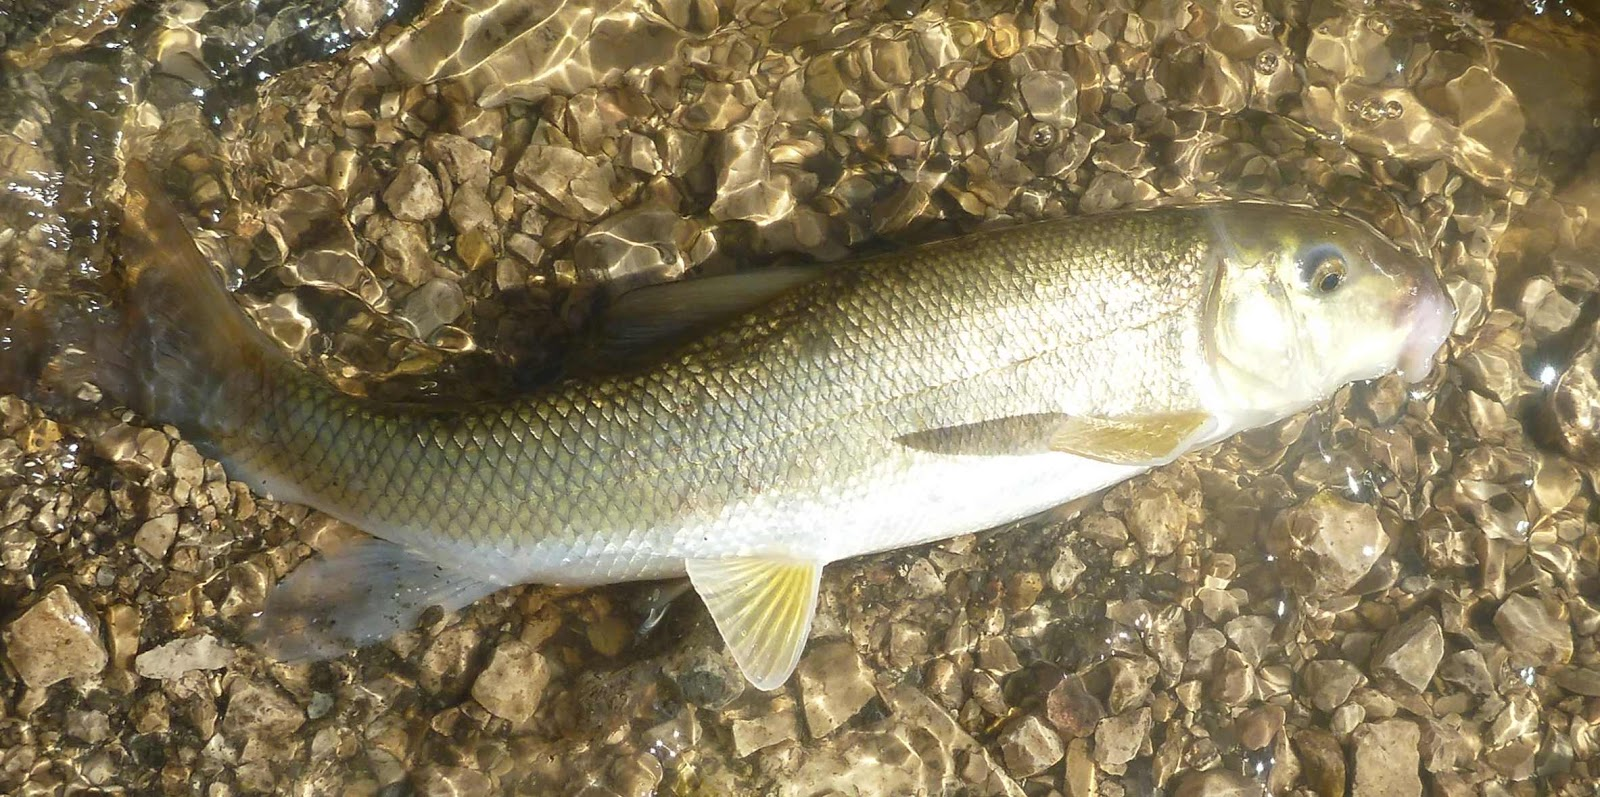 Manitoba fish species on the fly august 2013 for White fish types